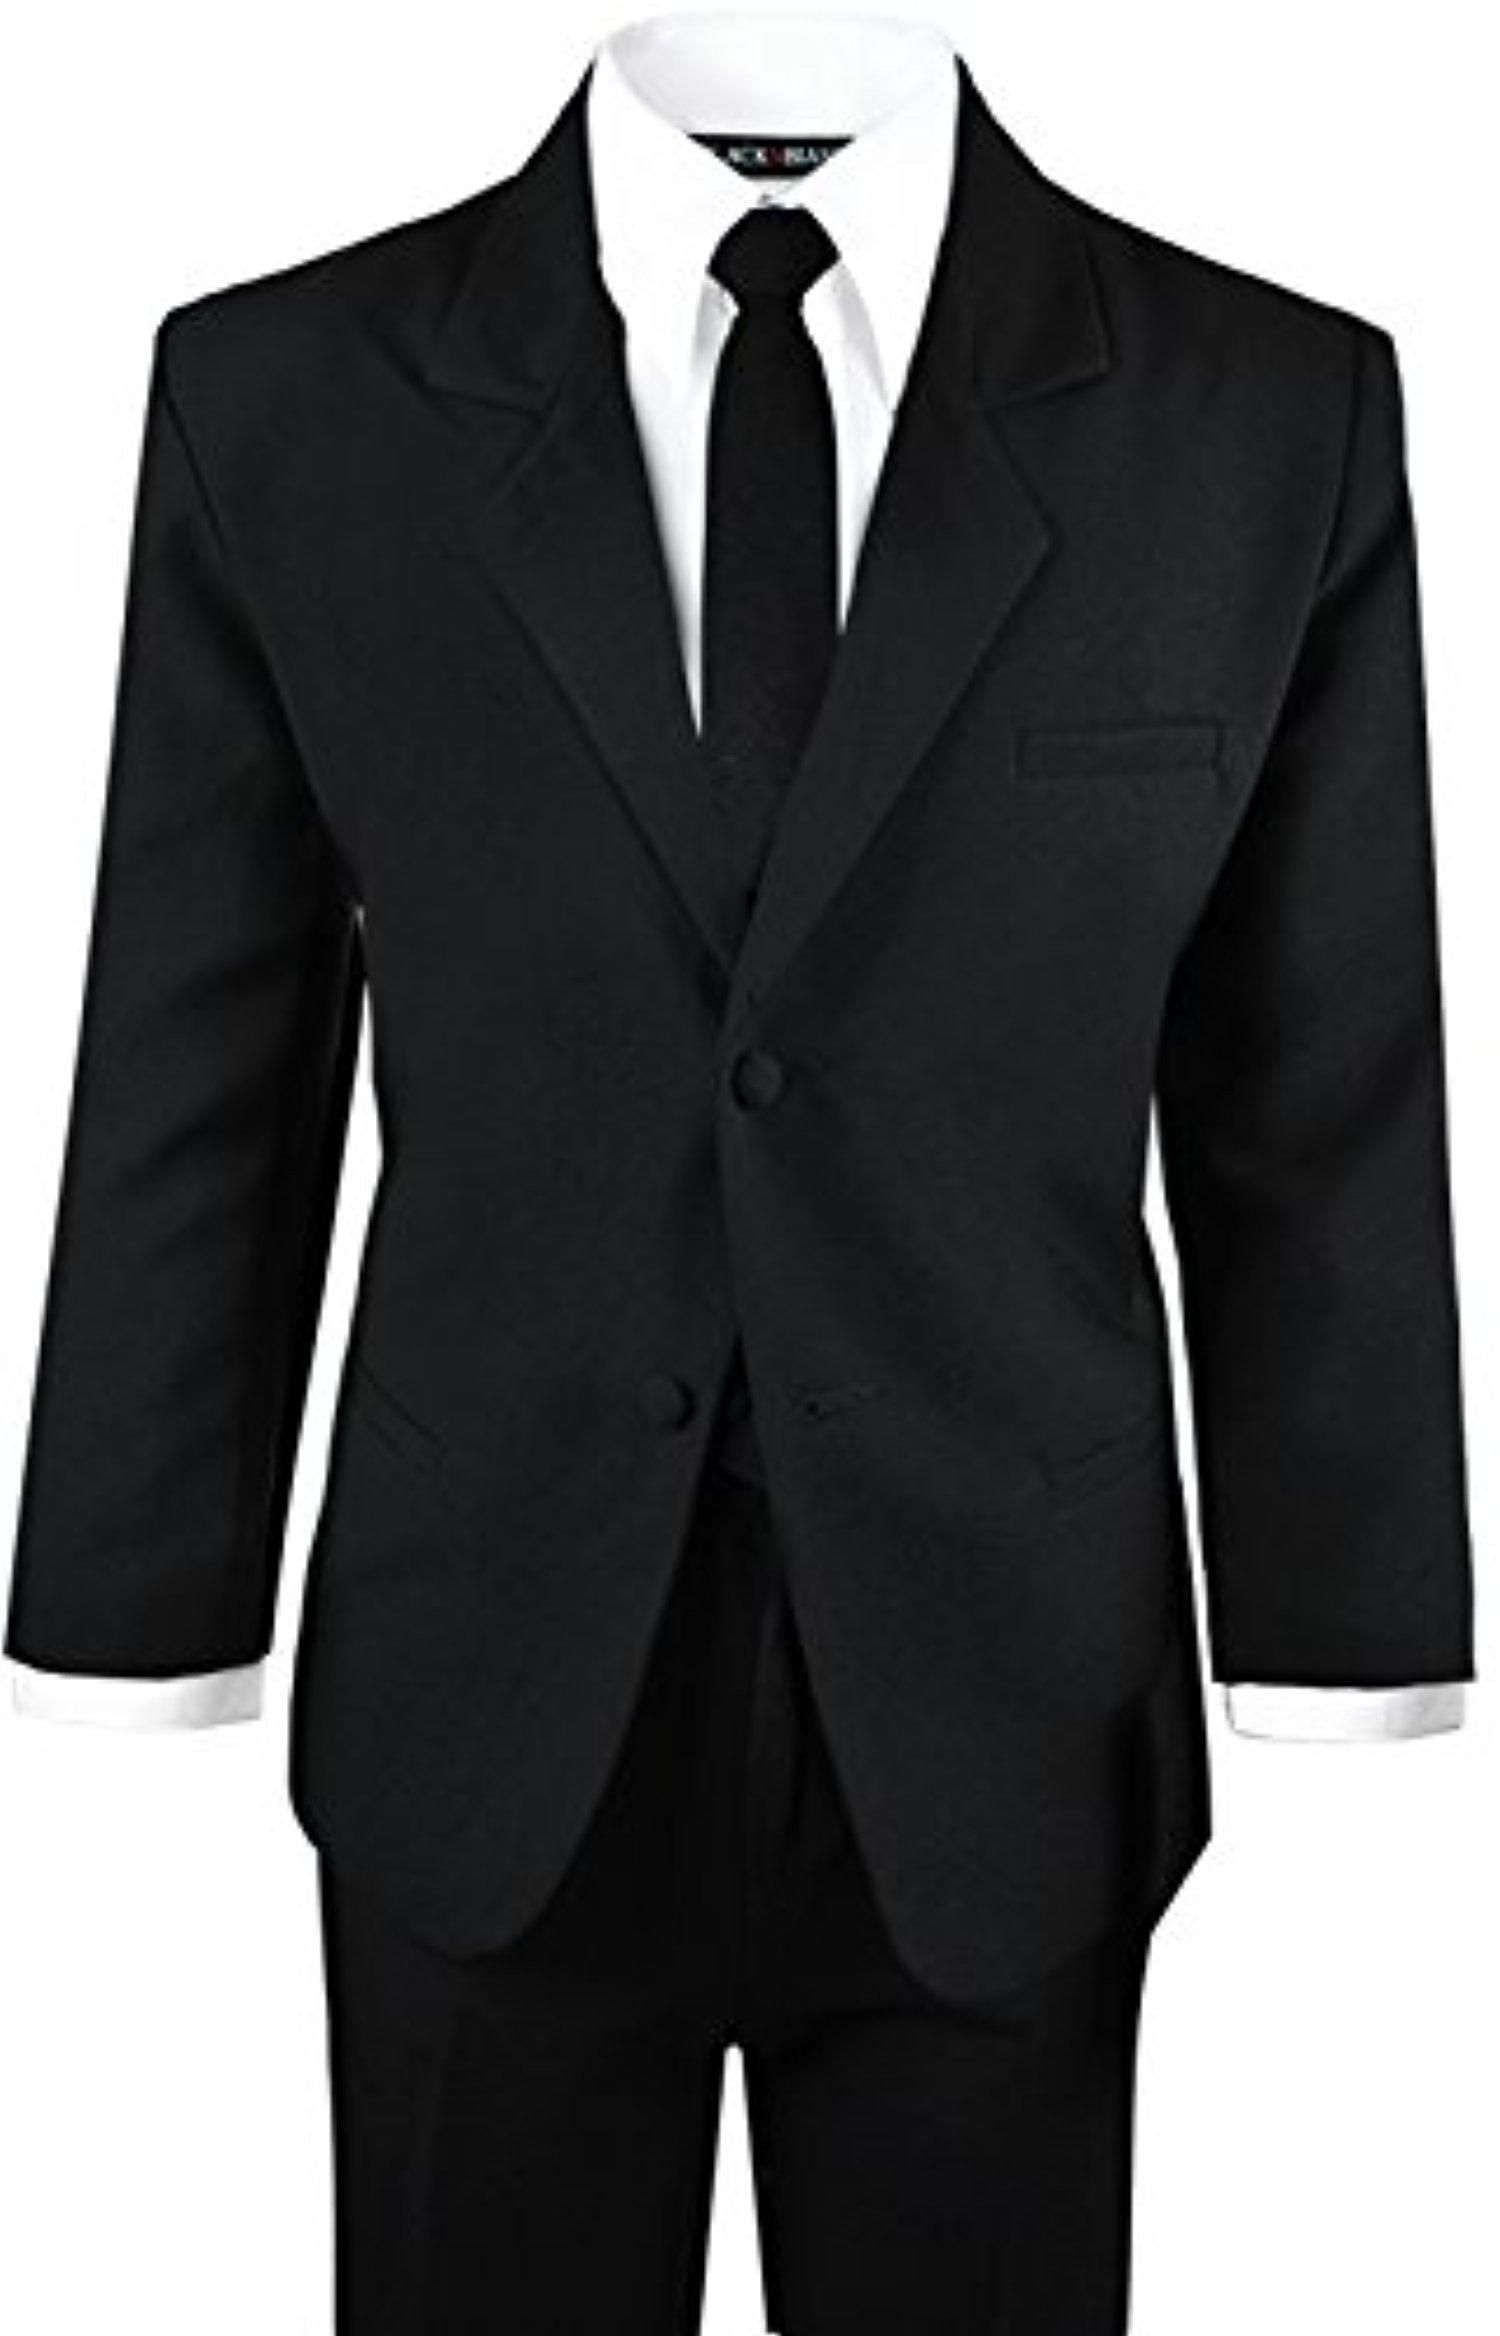 Black N Bianco Boys Formal Black Suit with Shirt and Vest